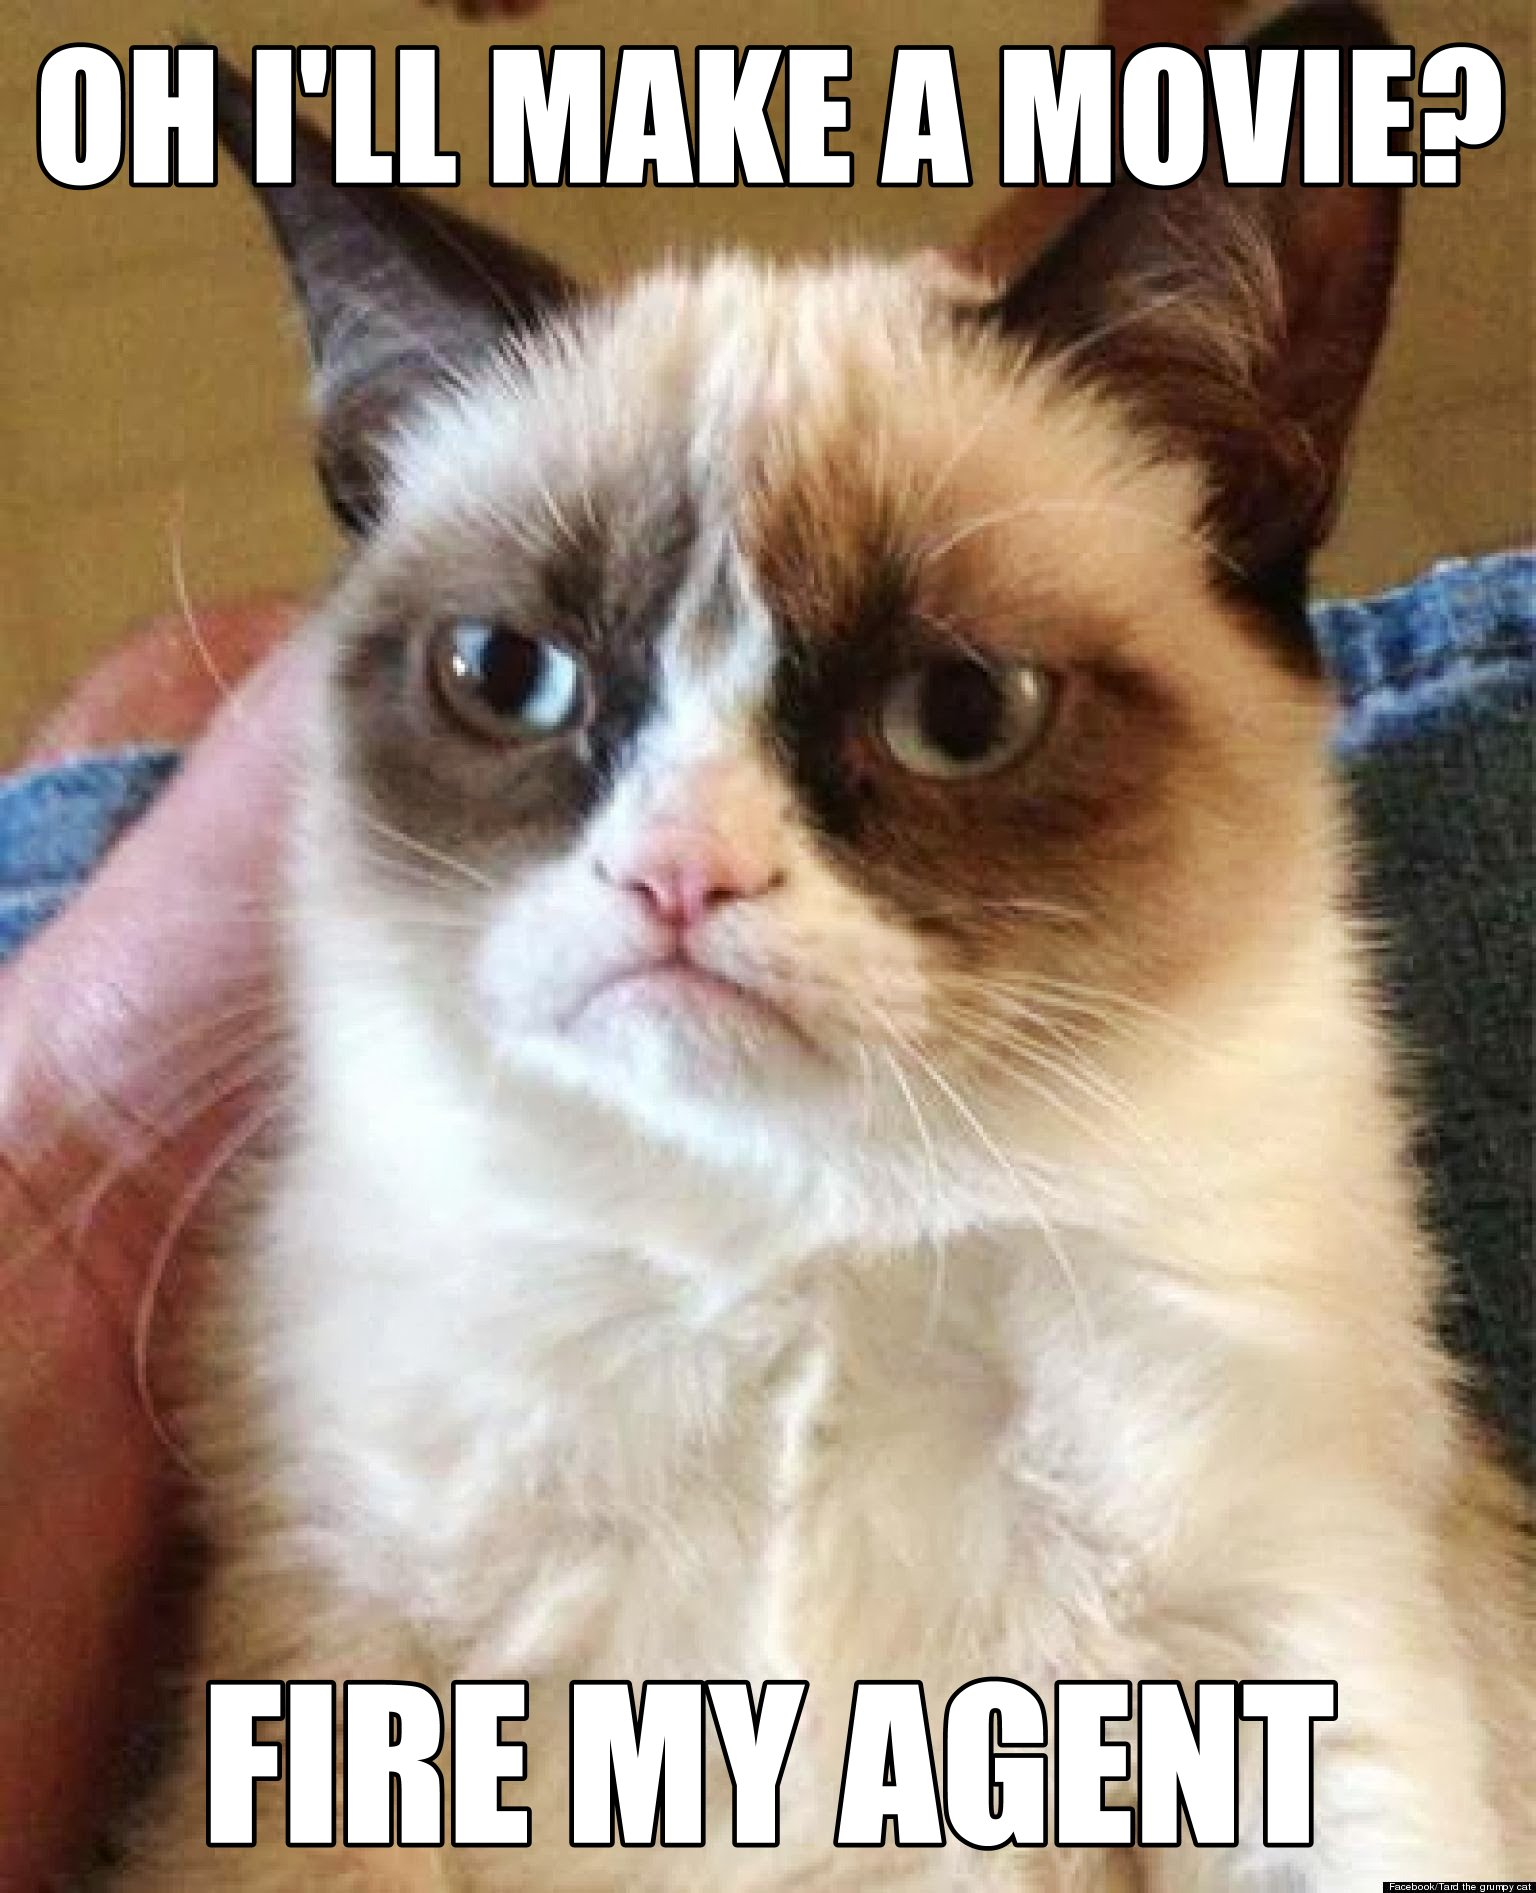 Grumpy cat learns about his movie grumpy cat know your meme ohill make a movie fire my agent facebook tard the grumpy cat thecheapjerseys Gallery